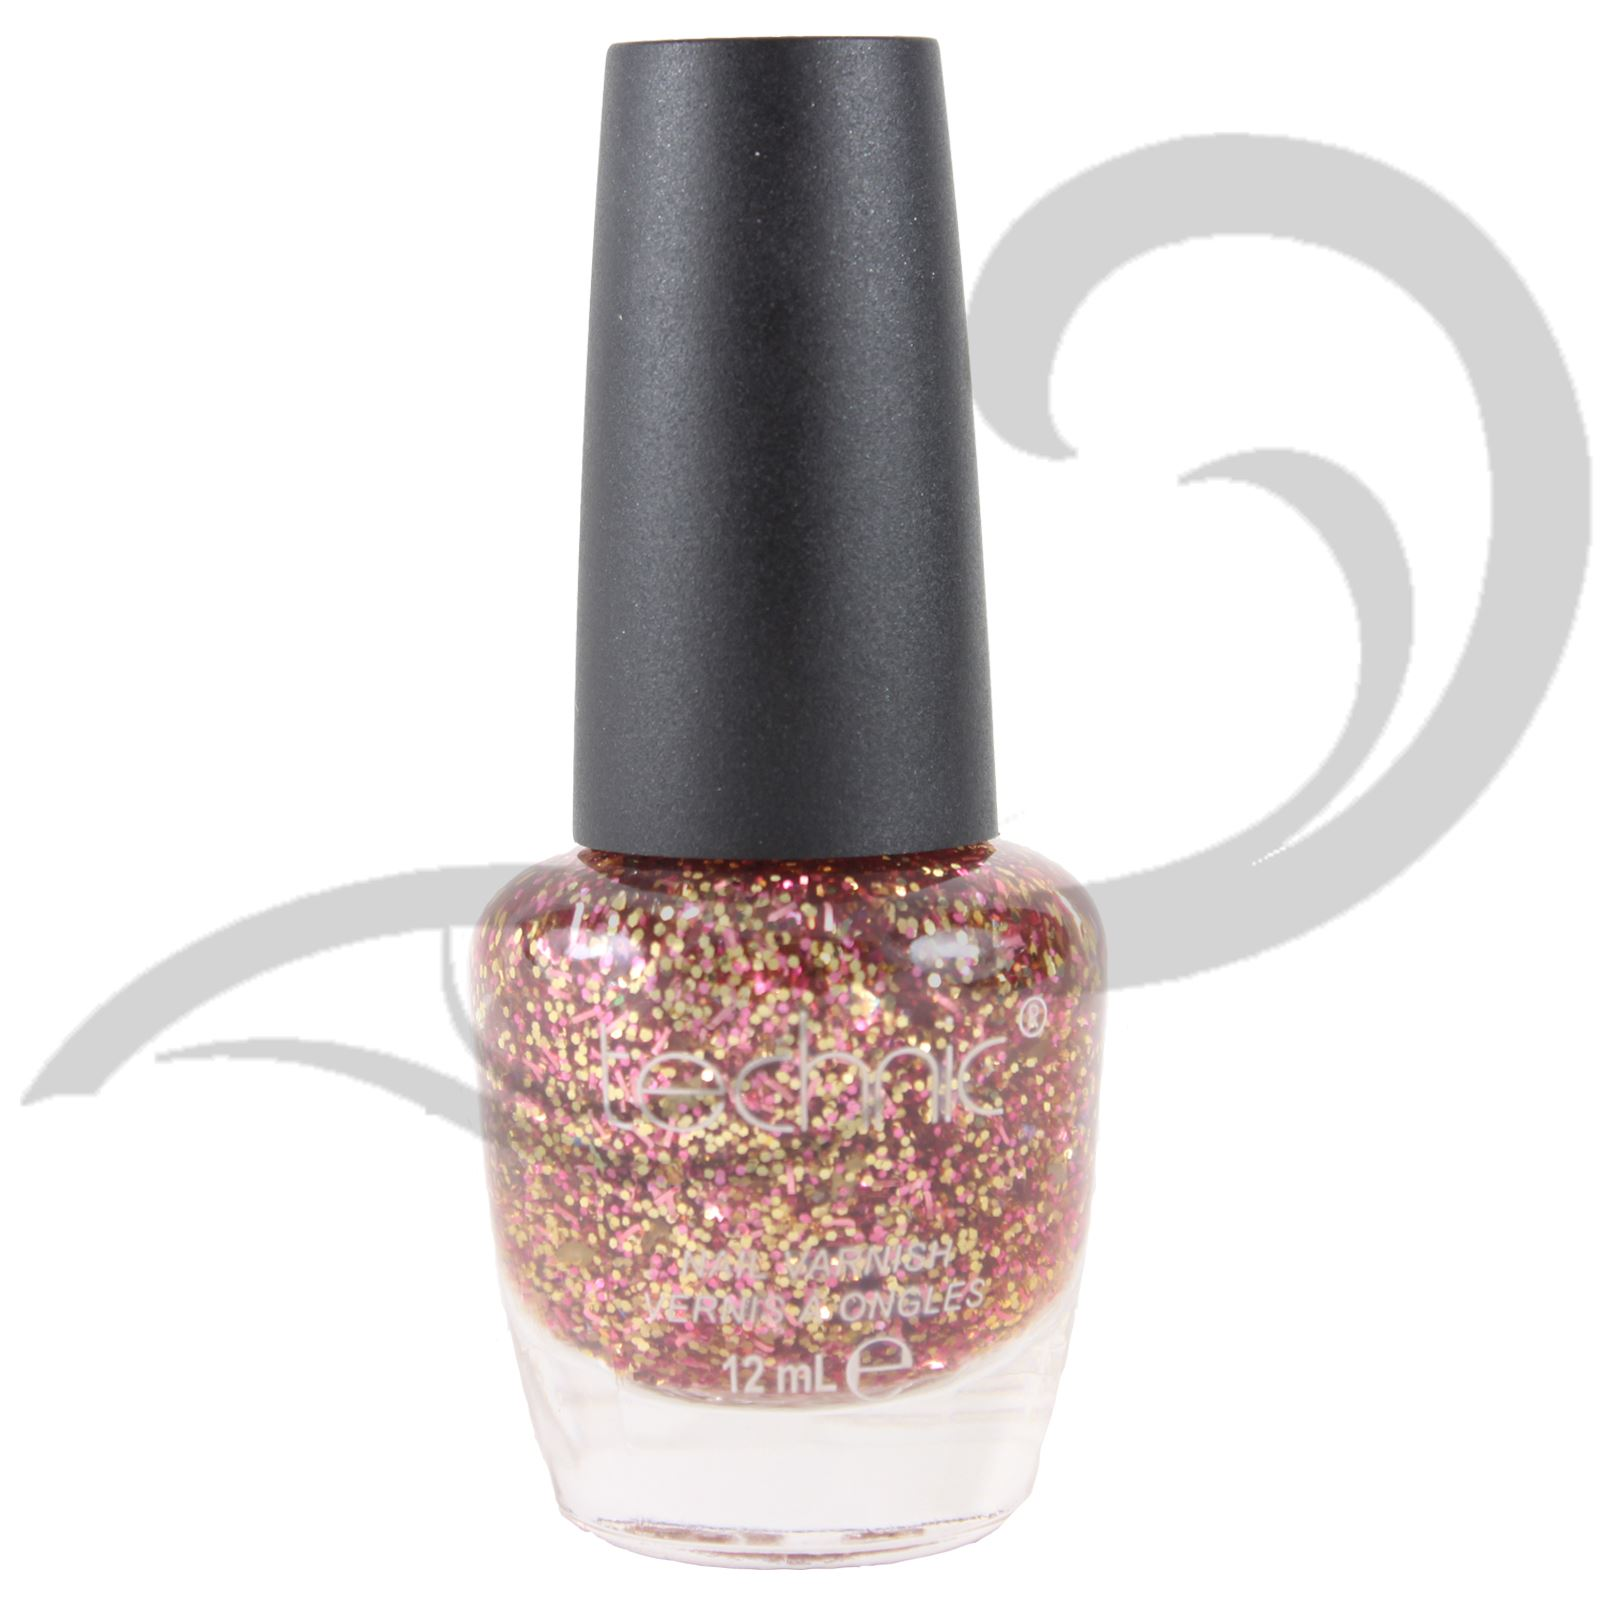 Shimmer And Sparkle Nail Polish: Technic Glitter Nail Varnish All Colour Glitter Chunky